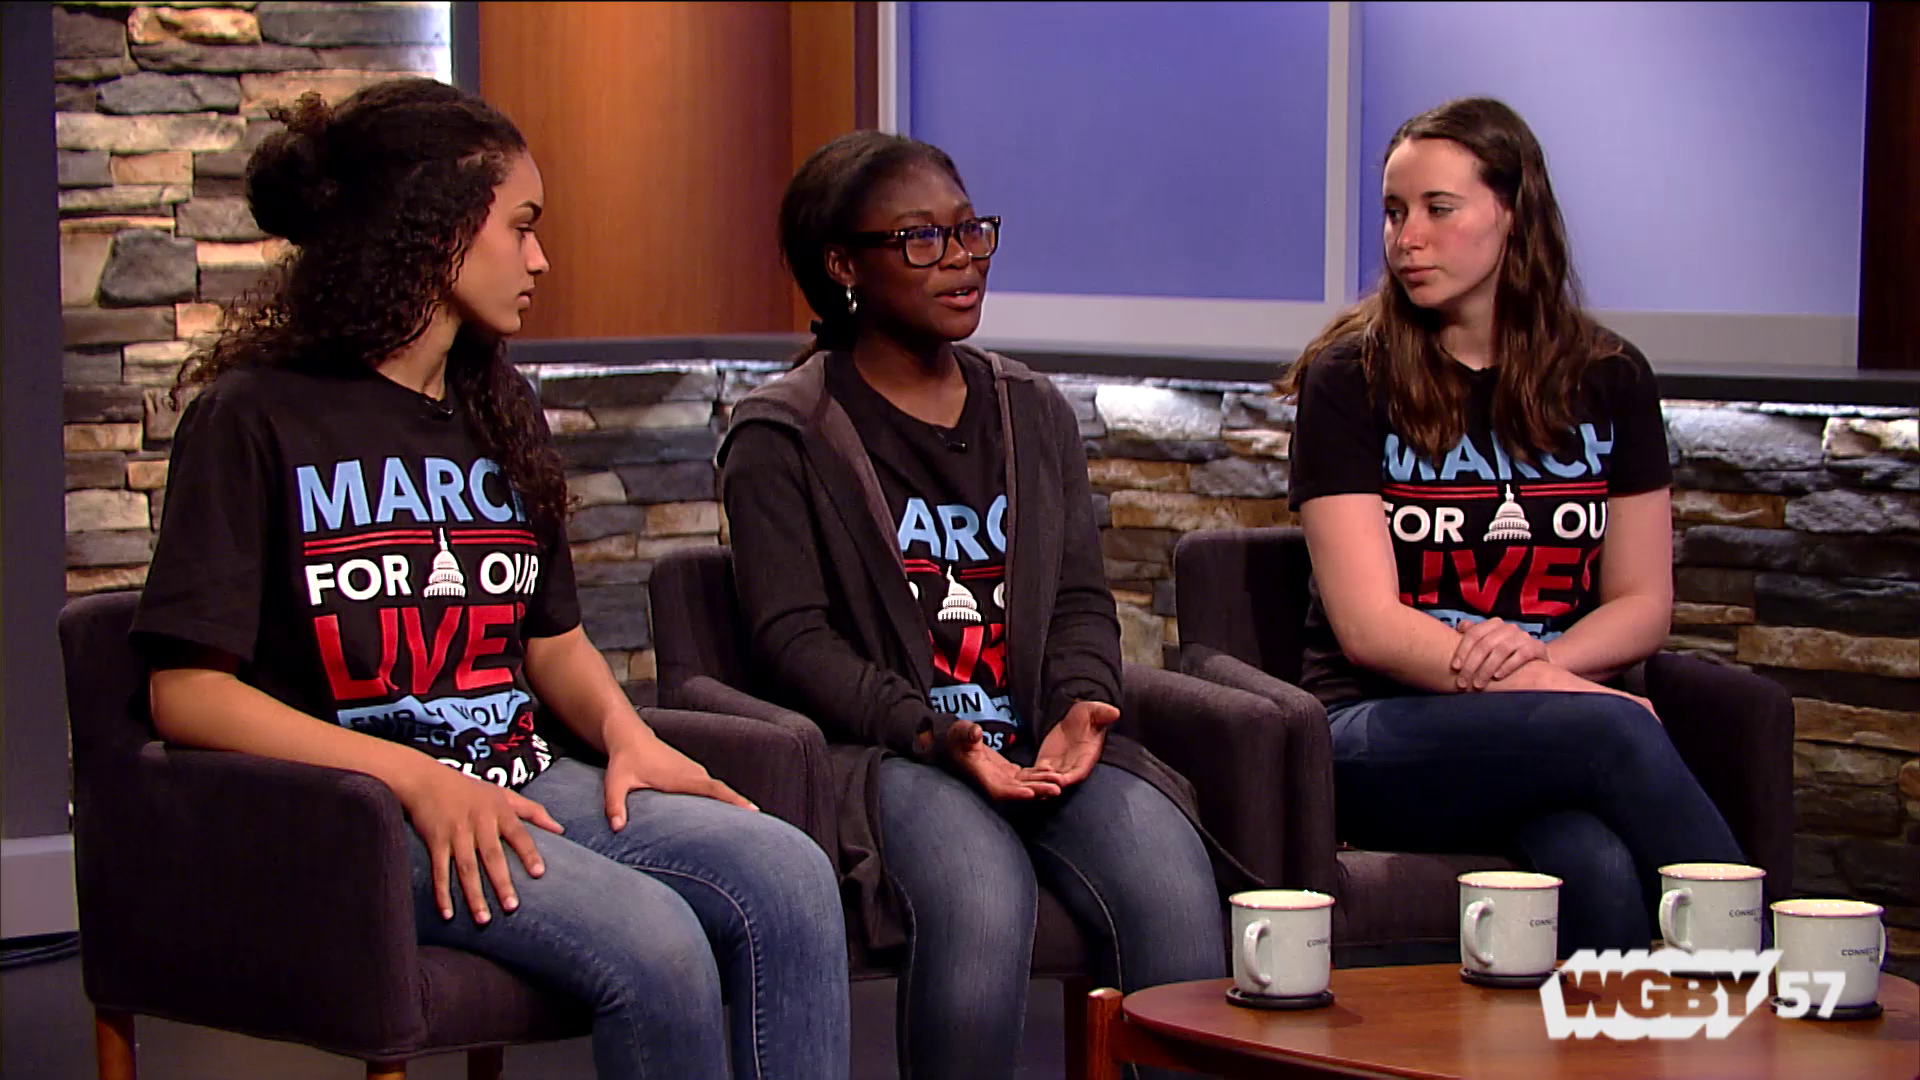 Organized by students, the March for Our Lives protested gun violence and called for more stringent gun laws. Three students from Pittsfield High School talk about their experience at the March 24,2 018 March and how they hope the student movement will propel the conversation about gun control forward,.